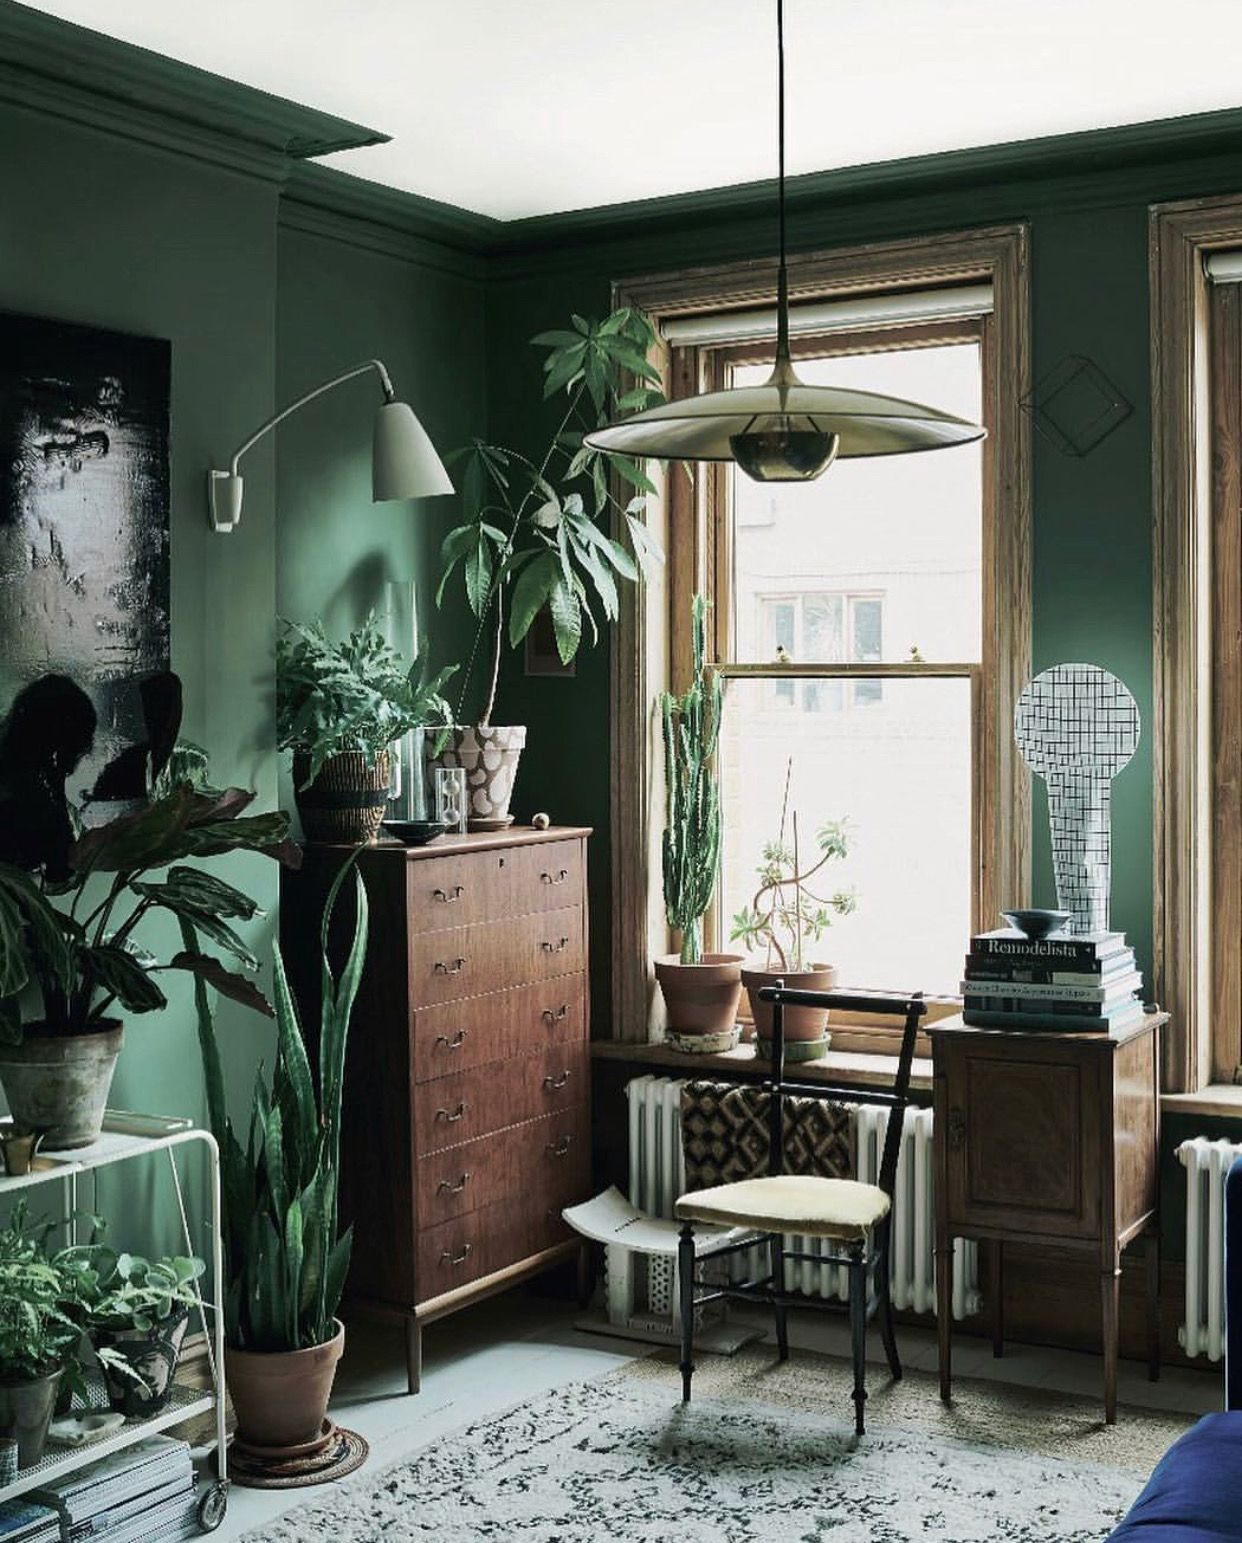 jungalow color & style | Home inspo | Living room green ...